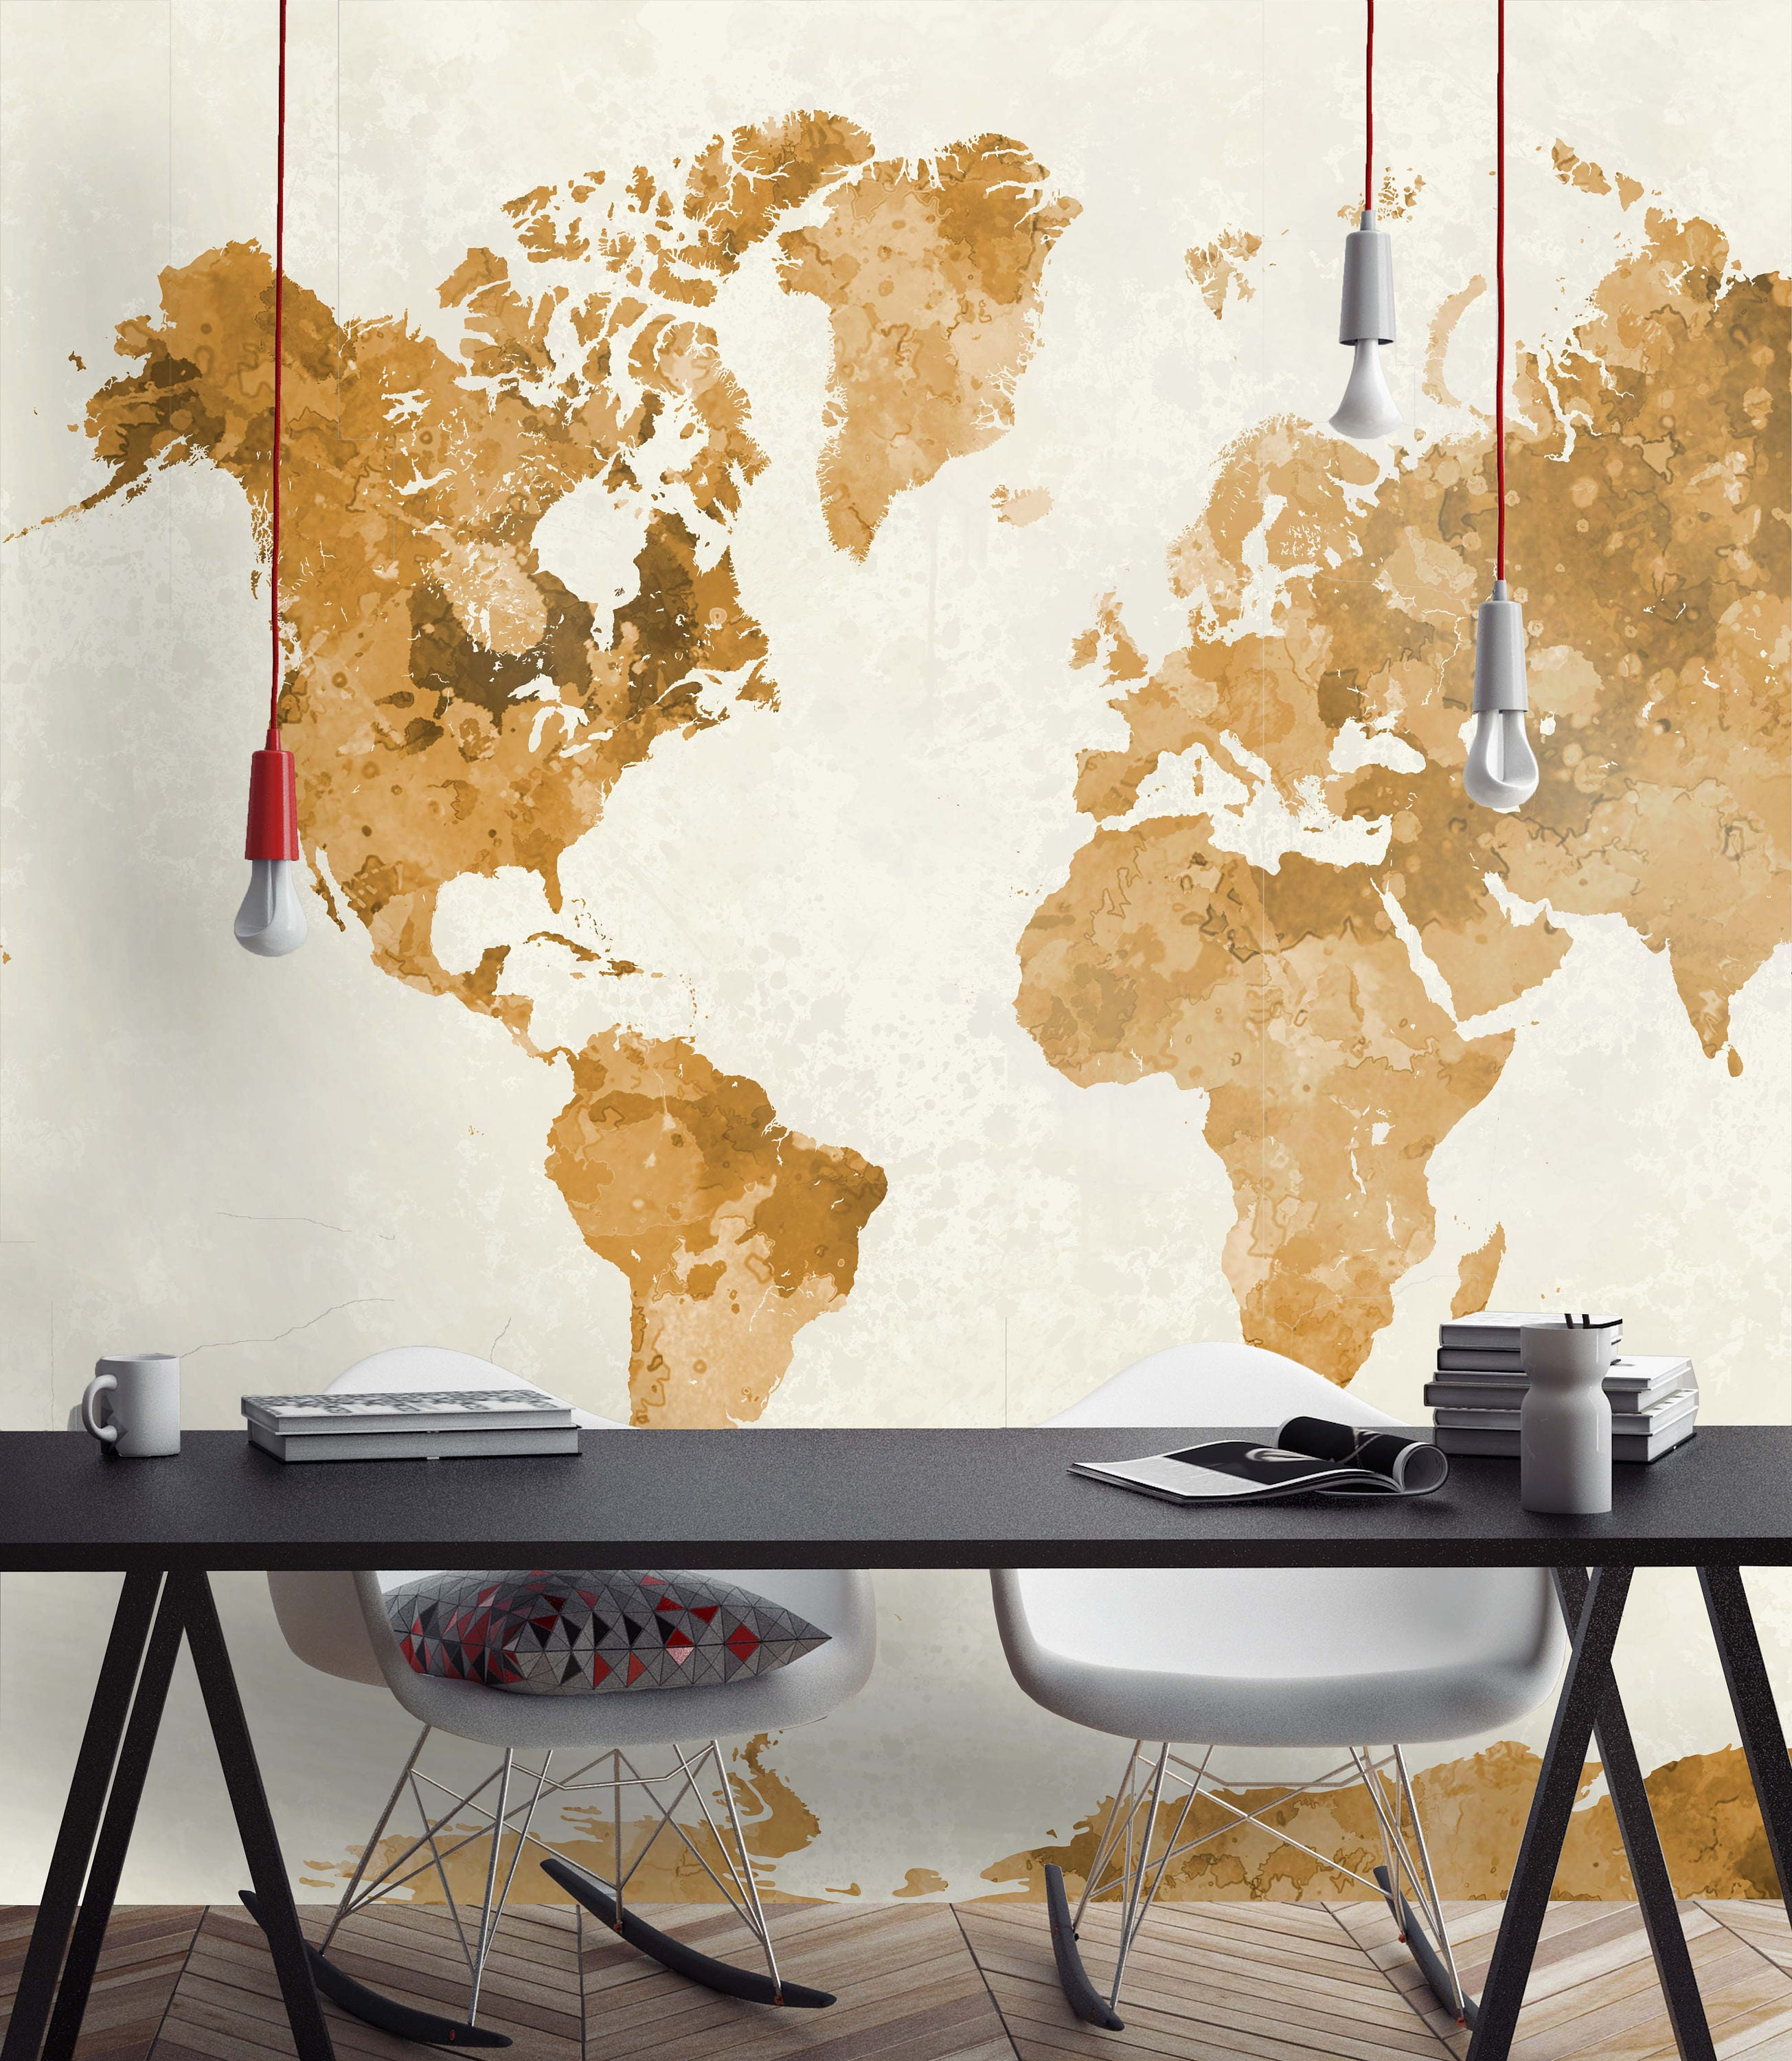 Watercolor World Map Wallpapers   Wallpapers Large World Map   Wallpapers  Extra Large World Map   Wall Decor